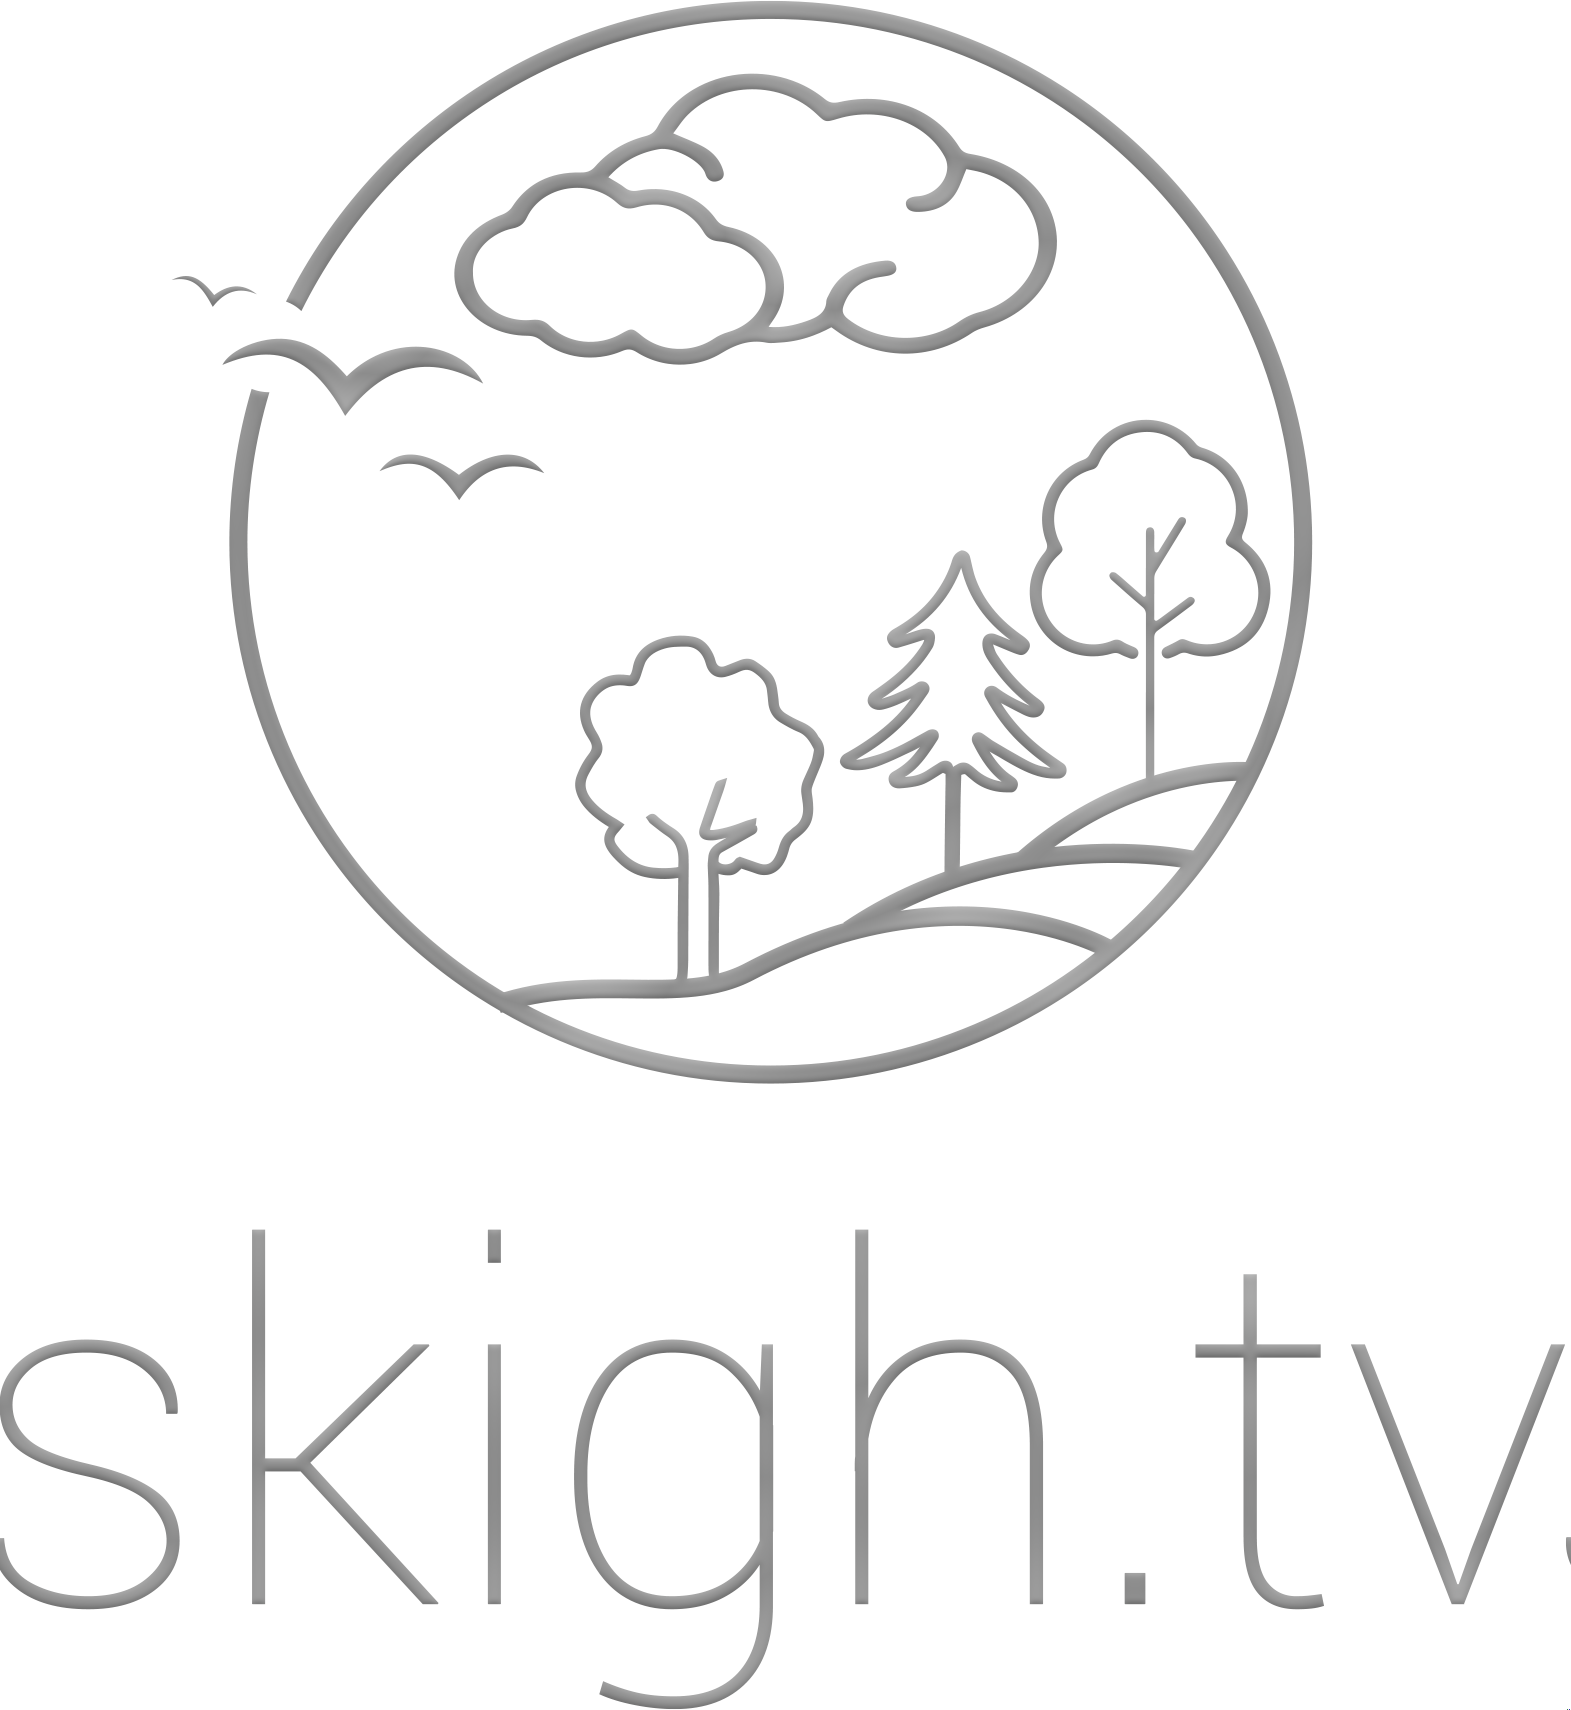 skigh.tv - photos and videos